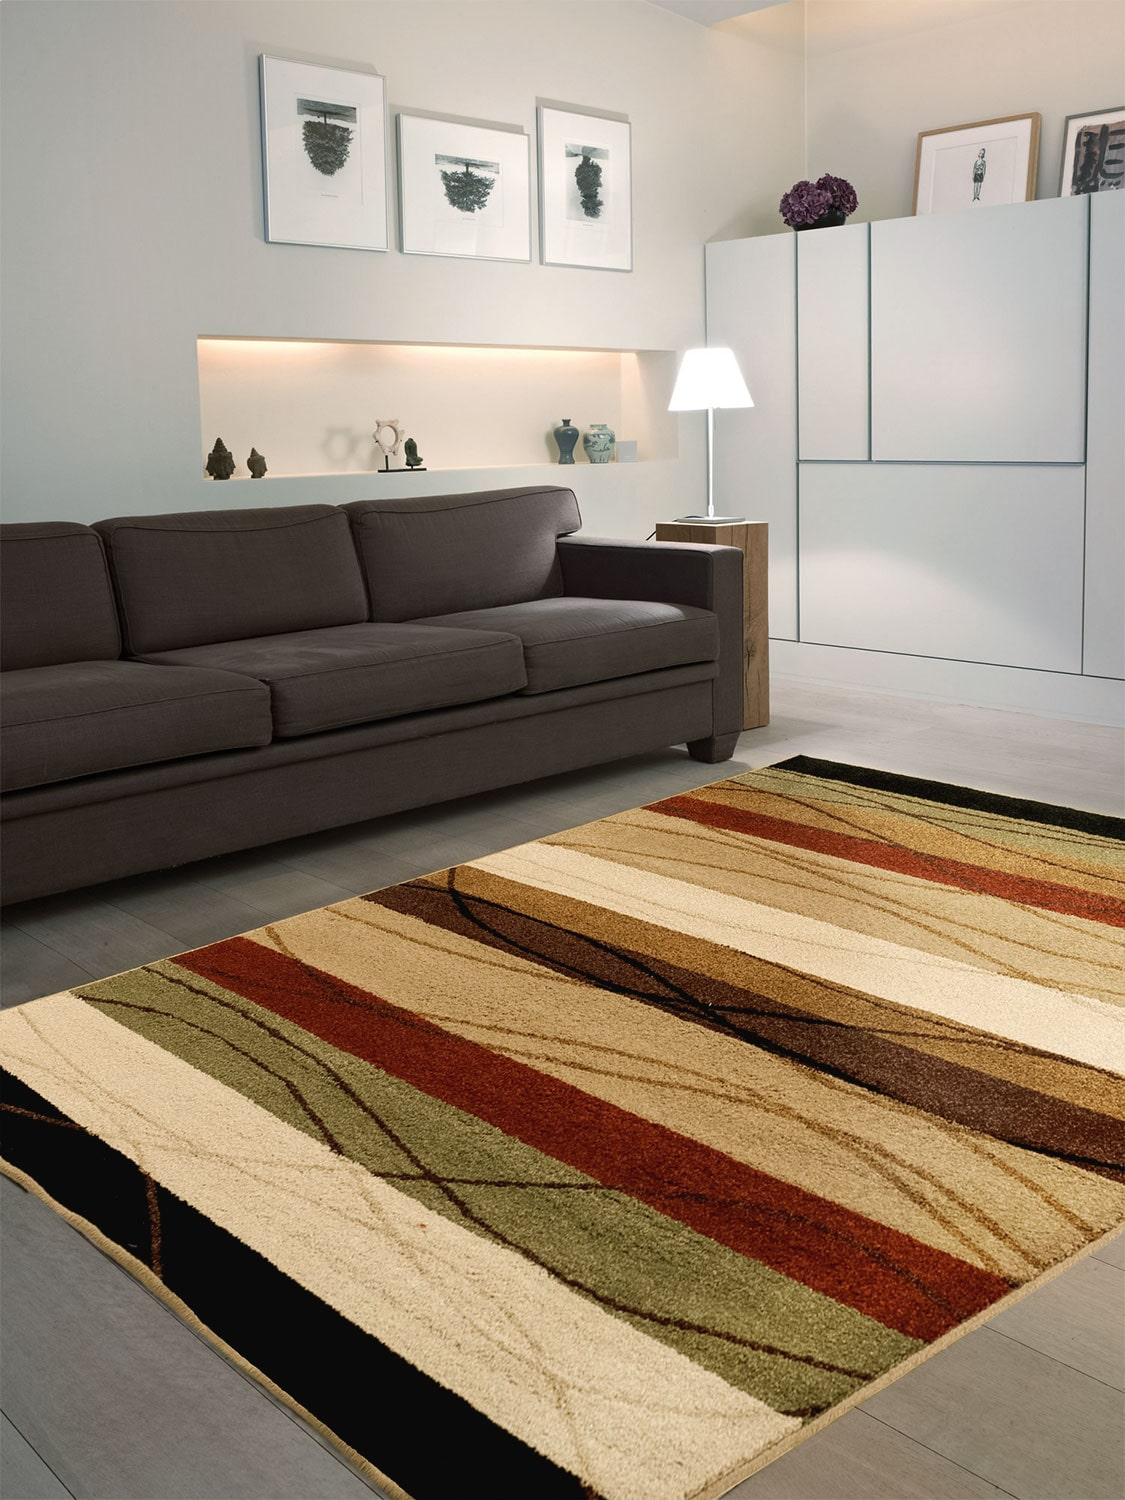 Rugs - Tonal Striped Area Rug – 7' x 10'